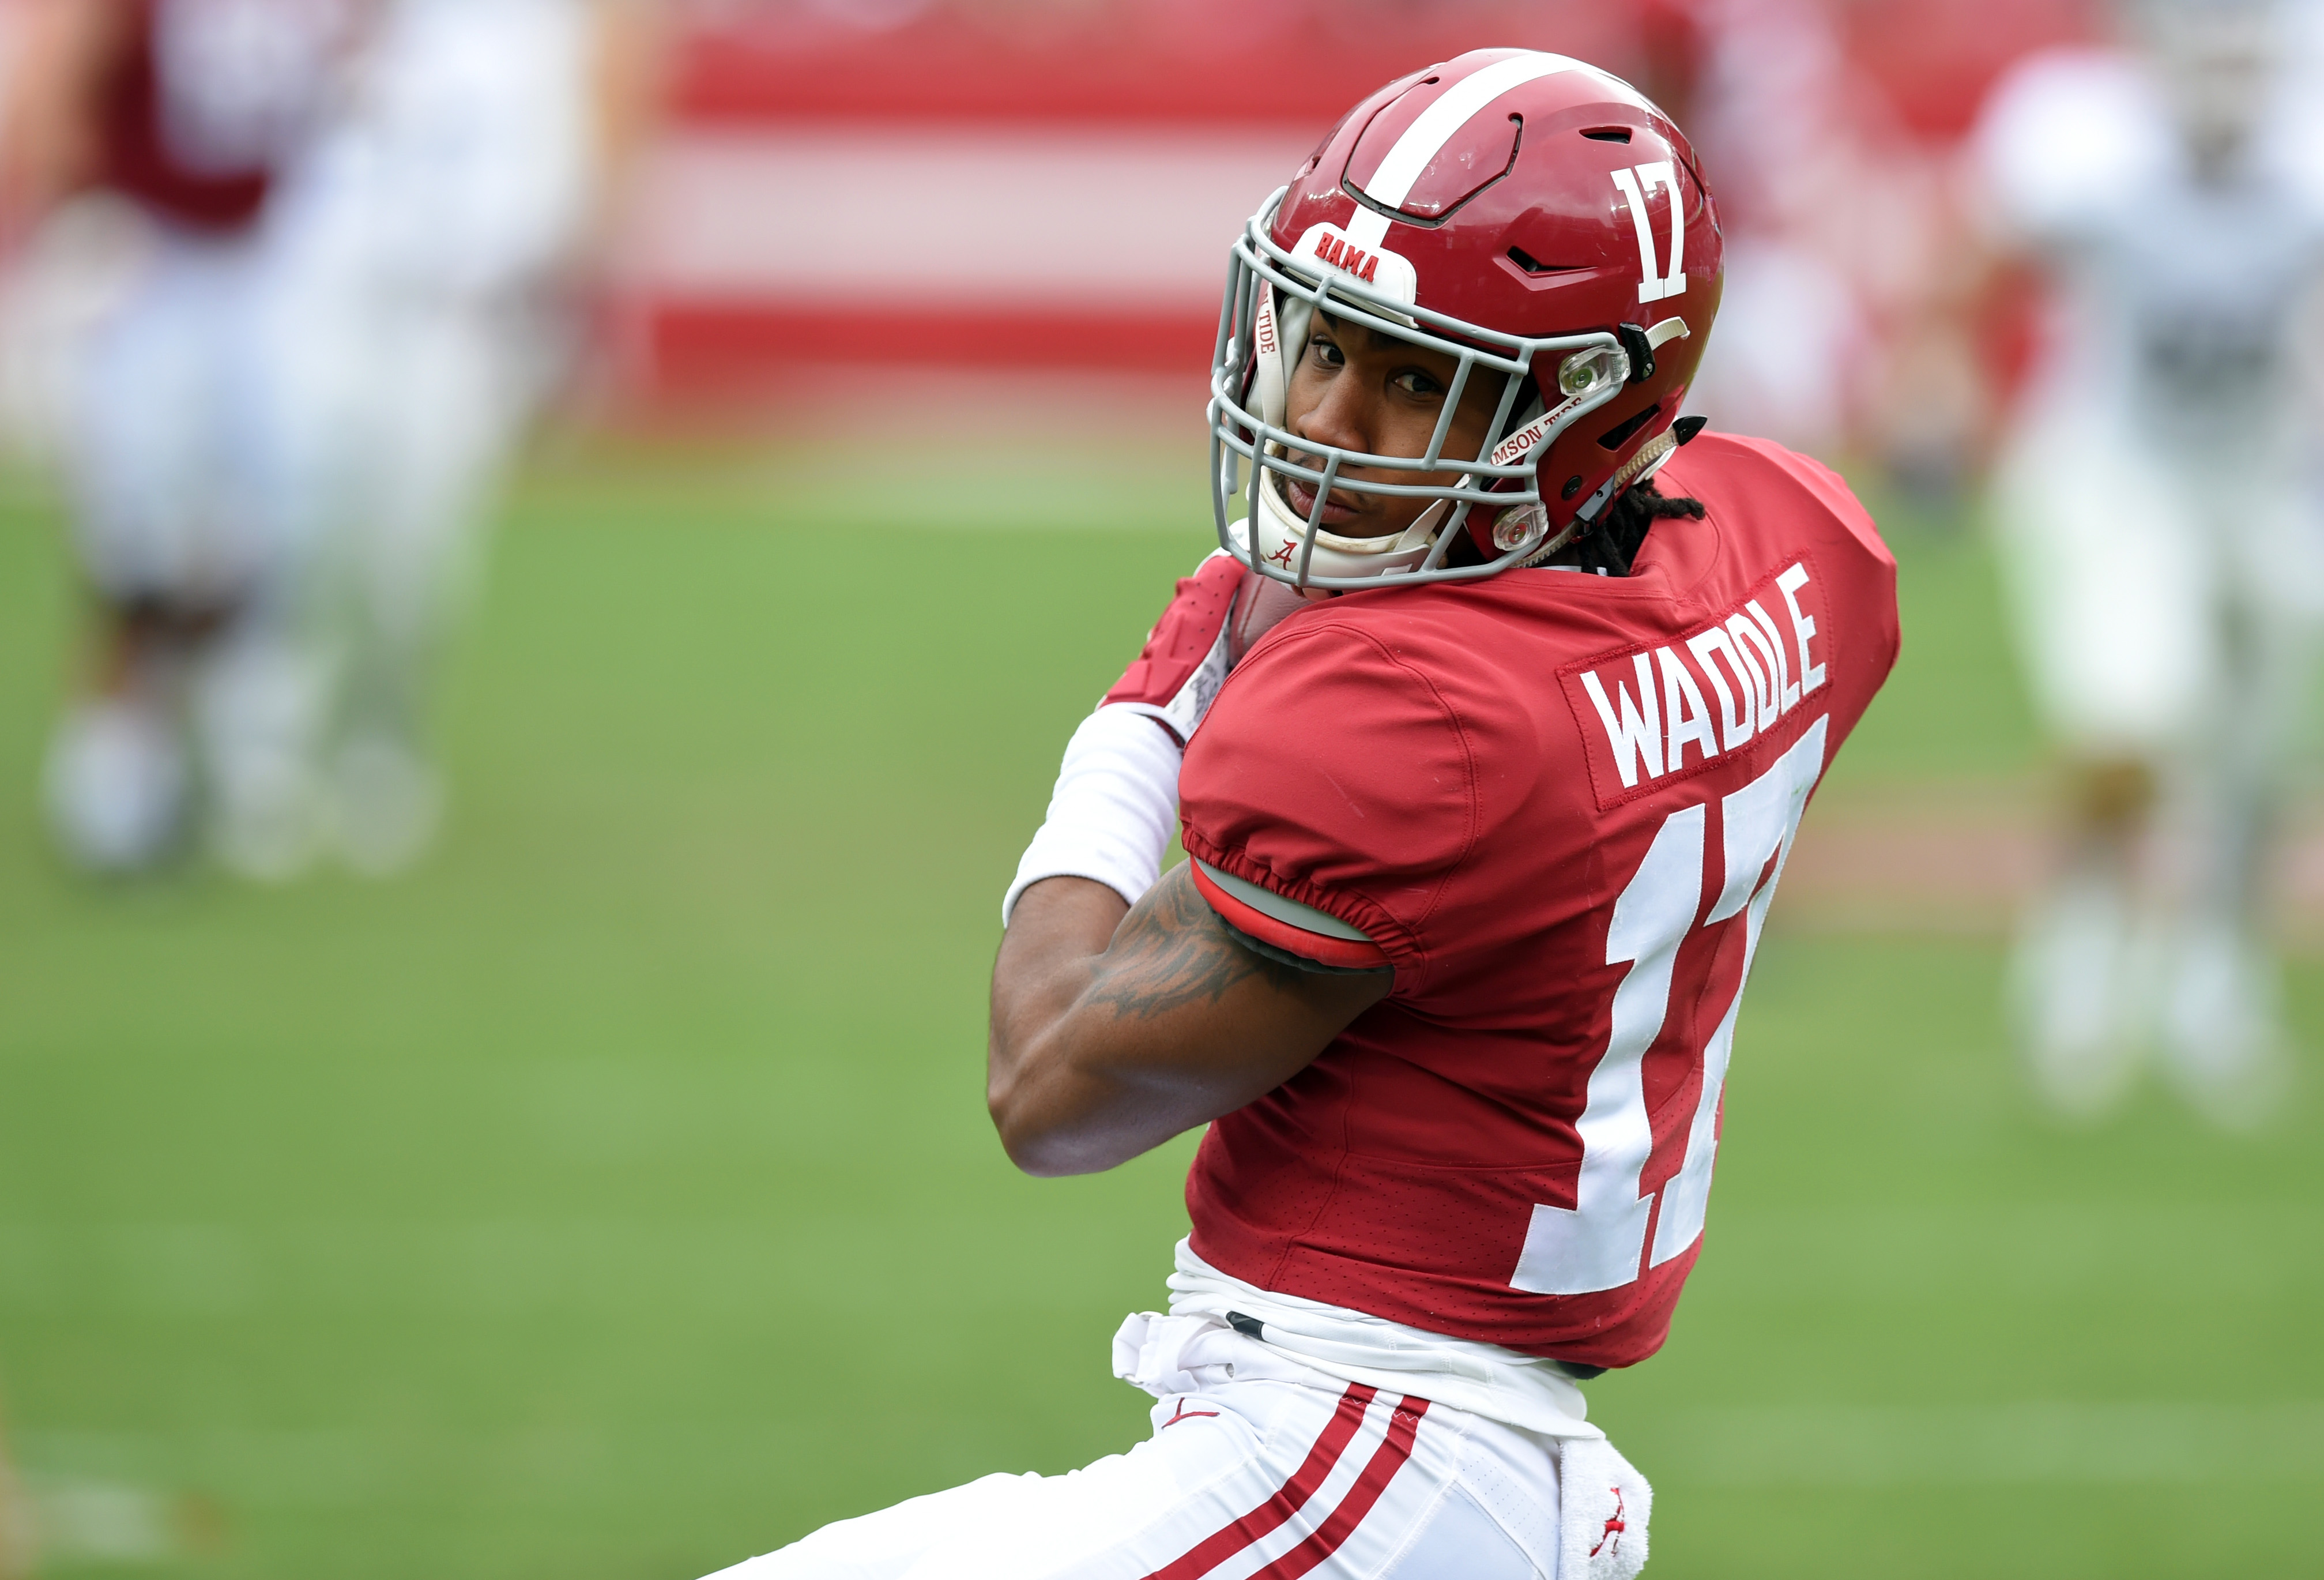 Alabama Crimson Tide wide receiver Jaylen Waddle pulls down a pass against the Western Carolina Catamounts during the second quarter at Bryant-Denny Stadium.